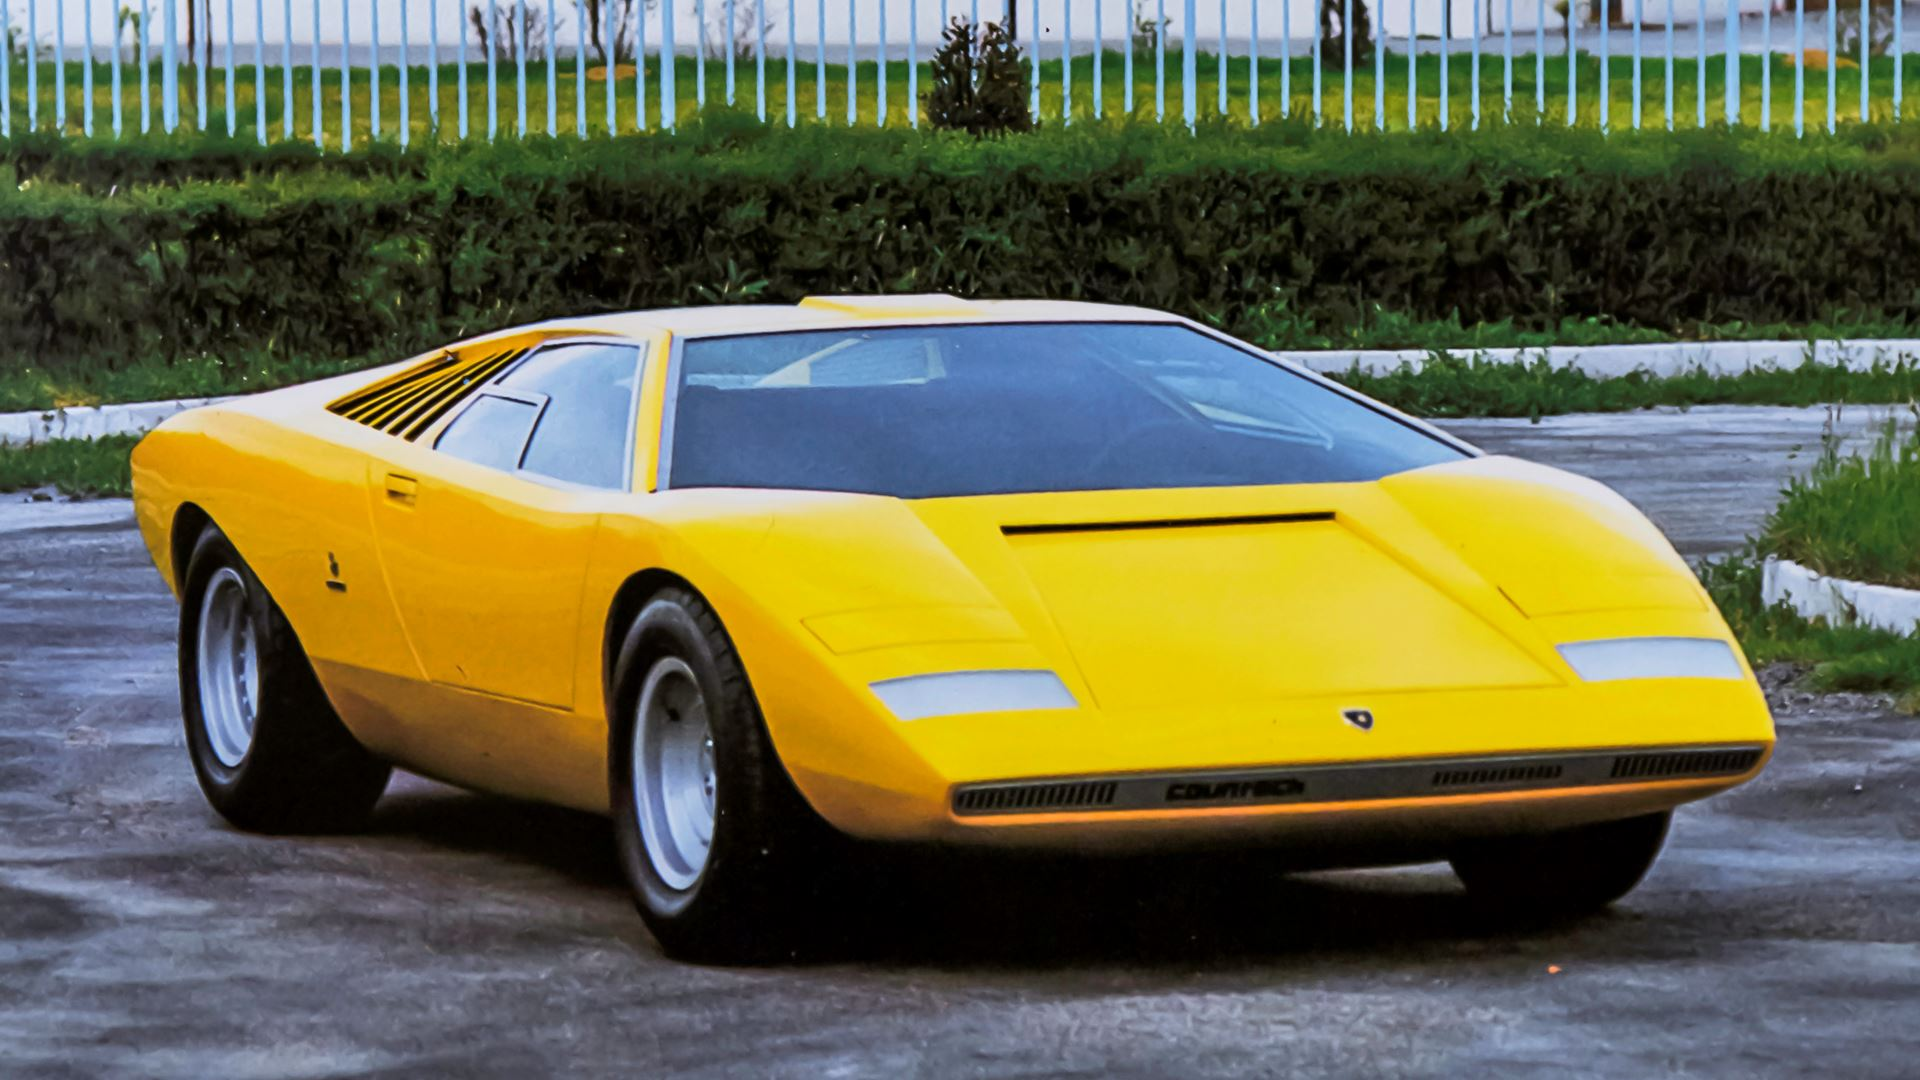 The legacy of the Lamborghini Countach in a video series. From the idea car, the LP 500 of 1971, to five generations spanning seventeen years - Image 4